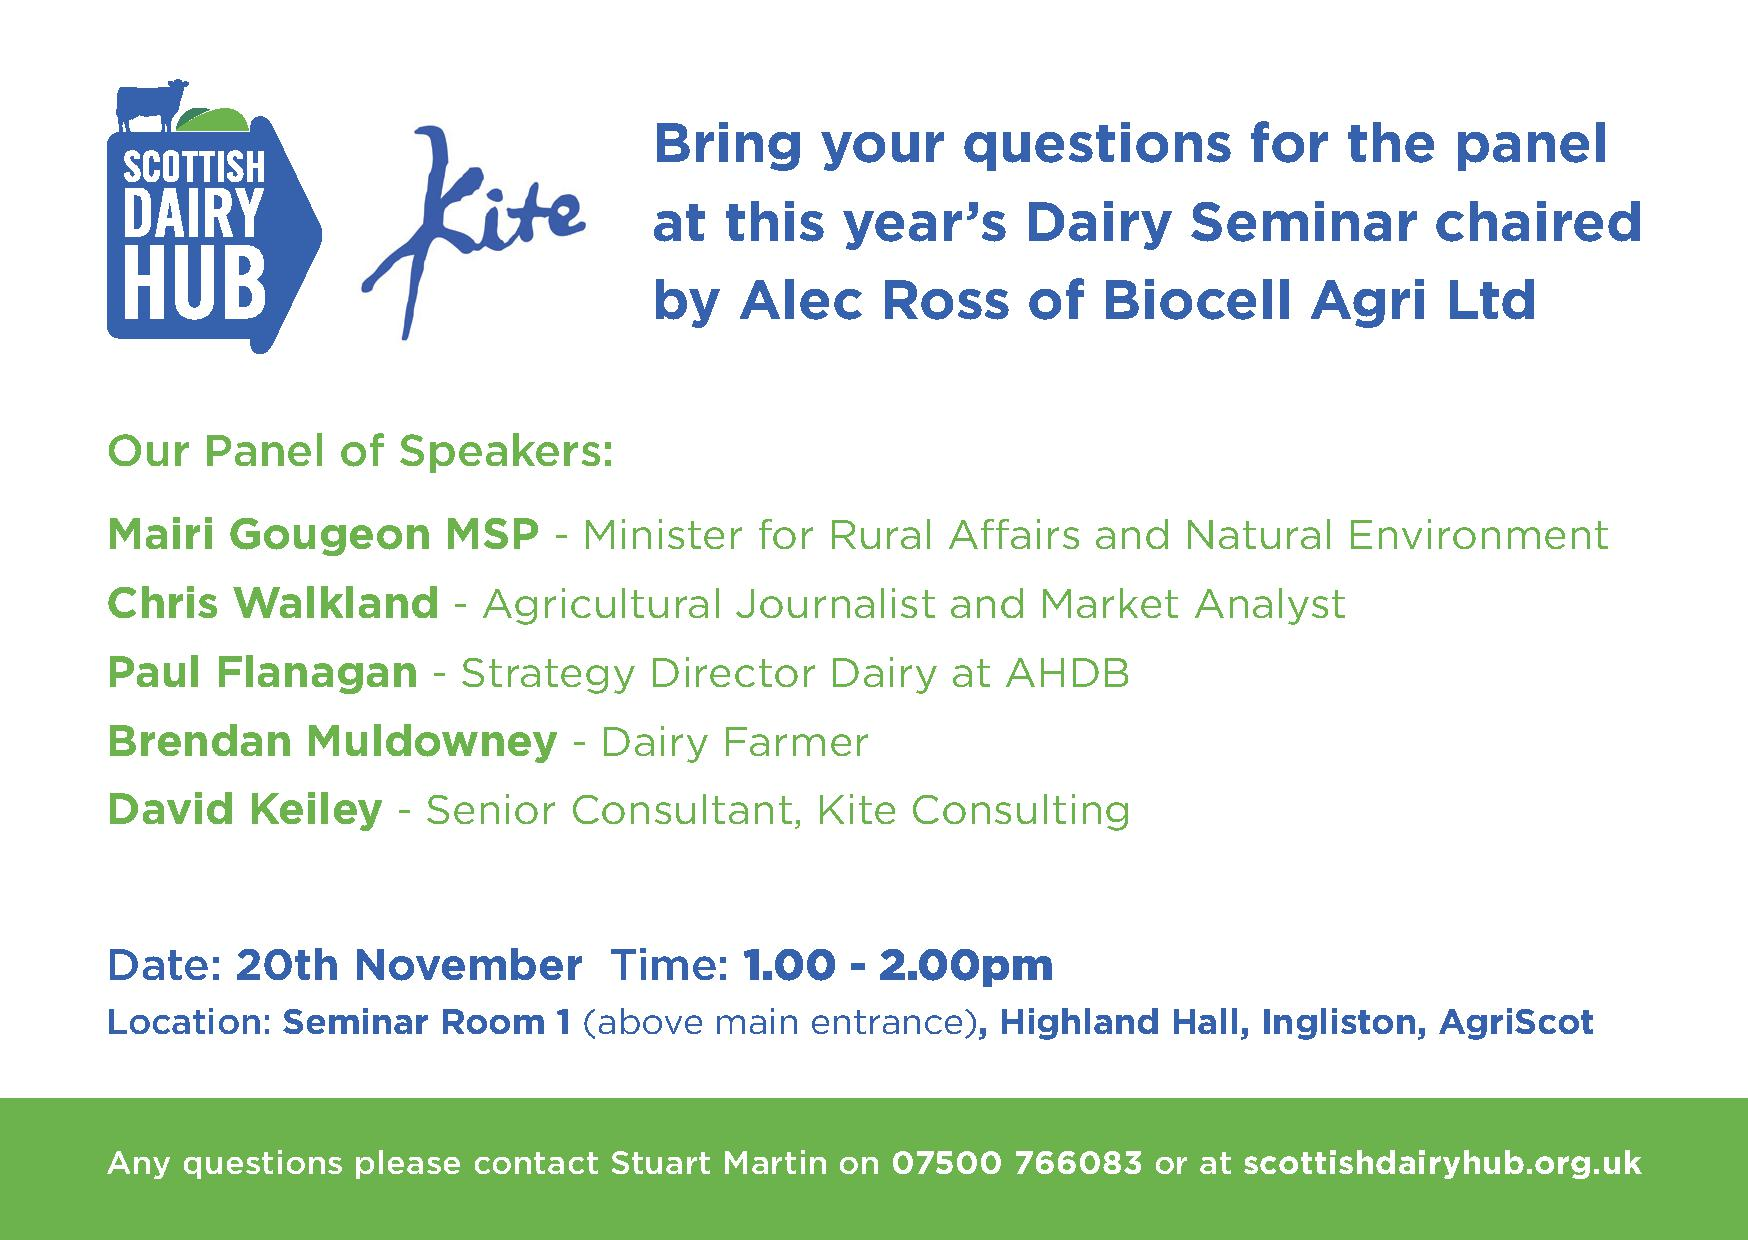 PROBING QUESTIONS PLANNED FOR AGRISCOT'S DAIRY SEMINAR